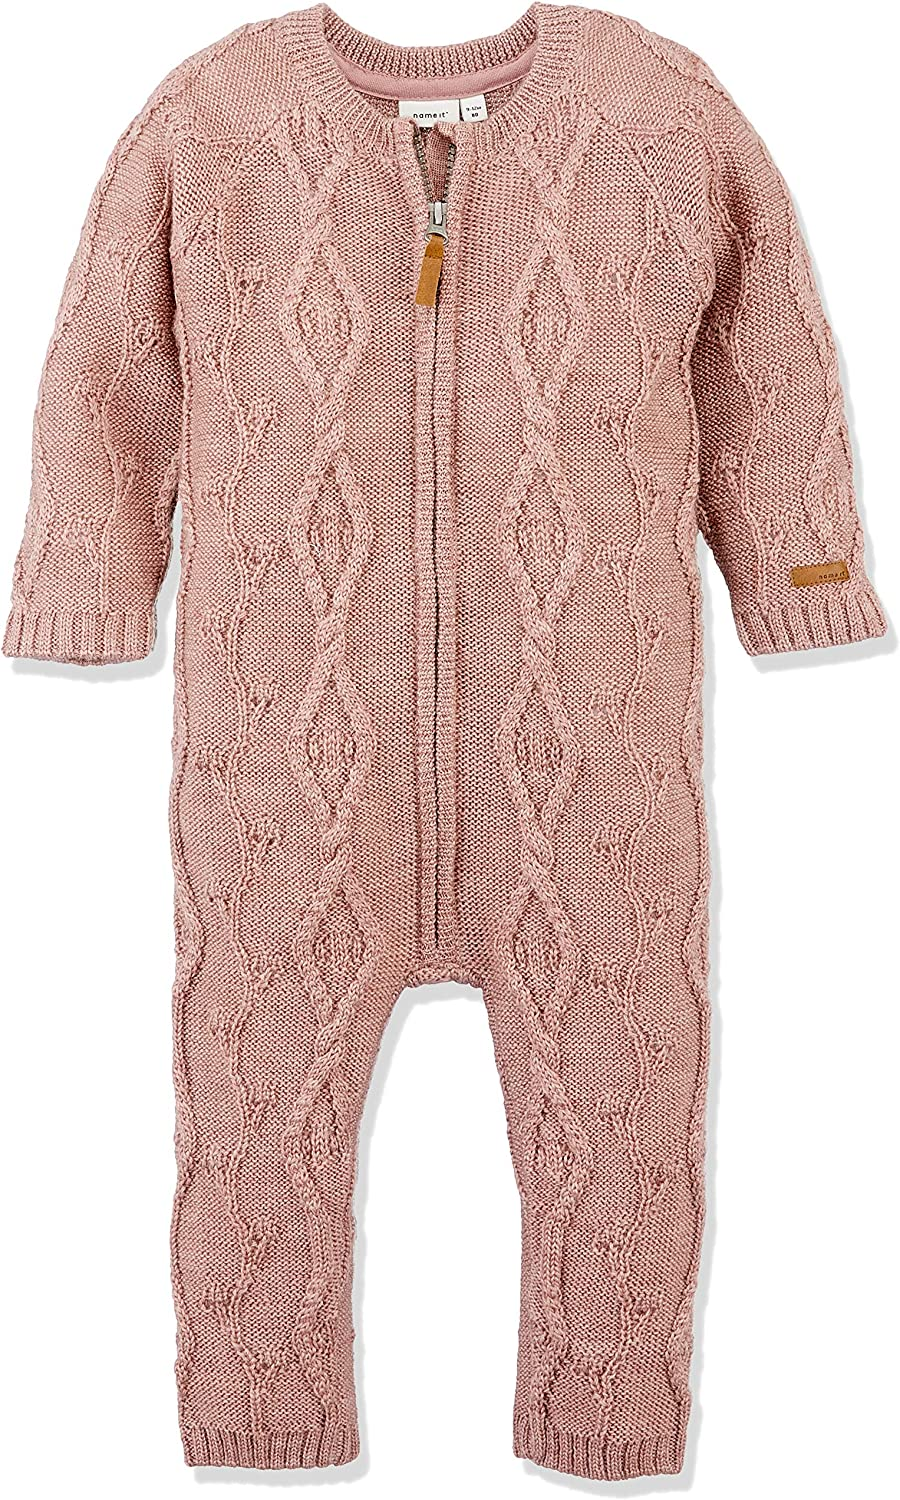 NAME IT Baby-M/ädchen Nmfwrilla Wool Ls Knit Suit Noos Spieler